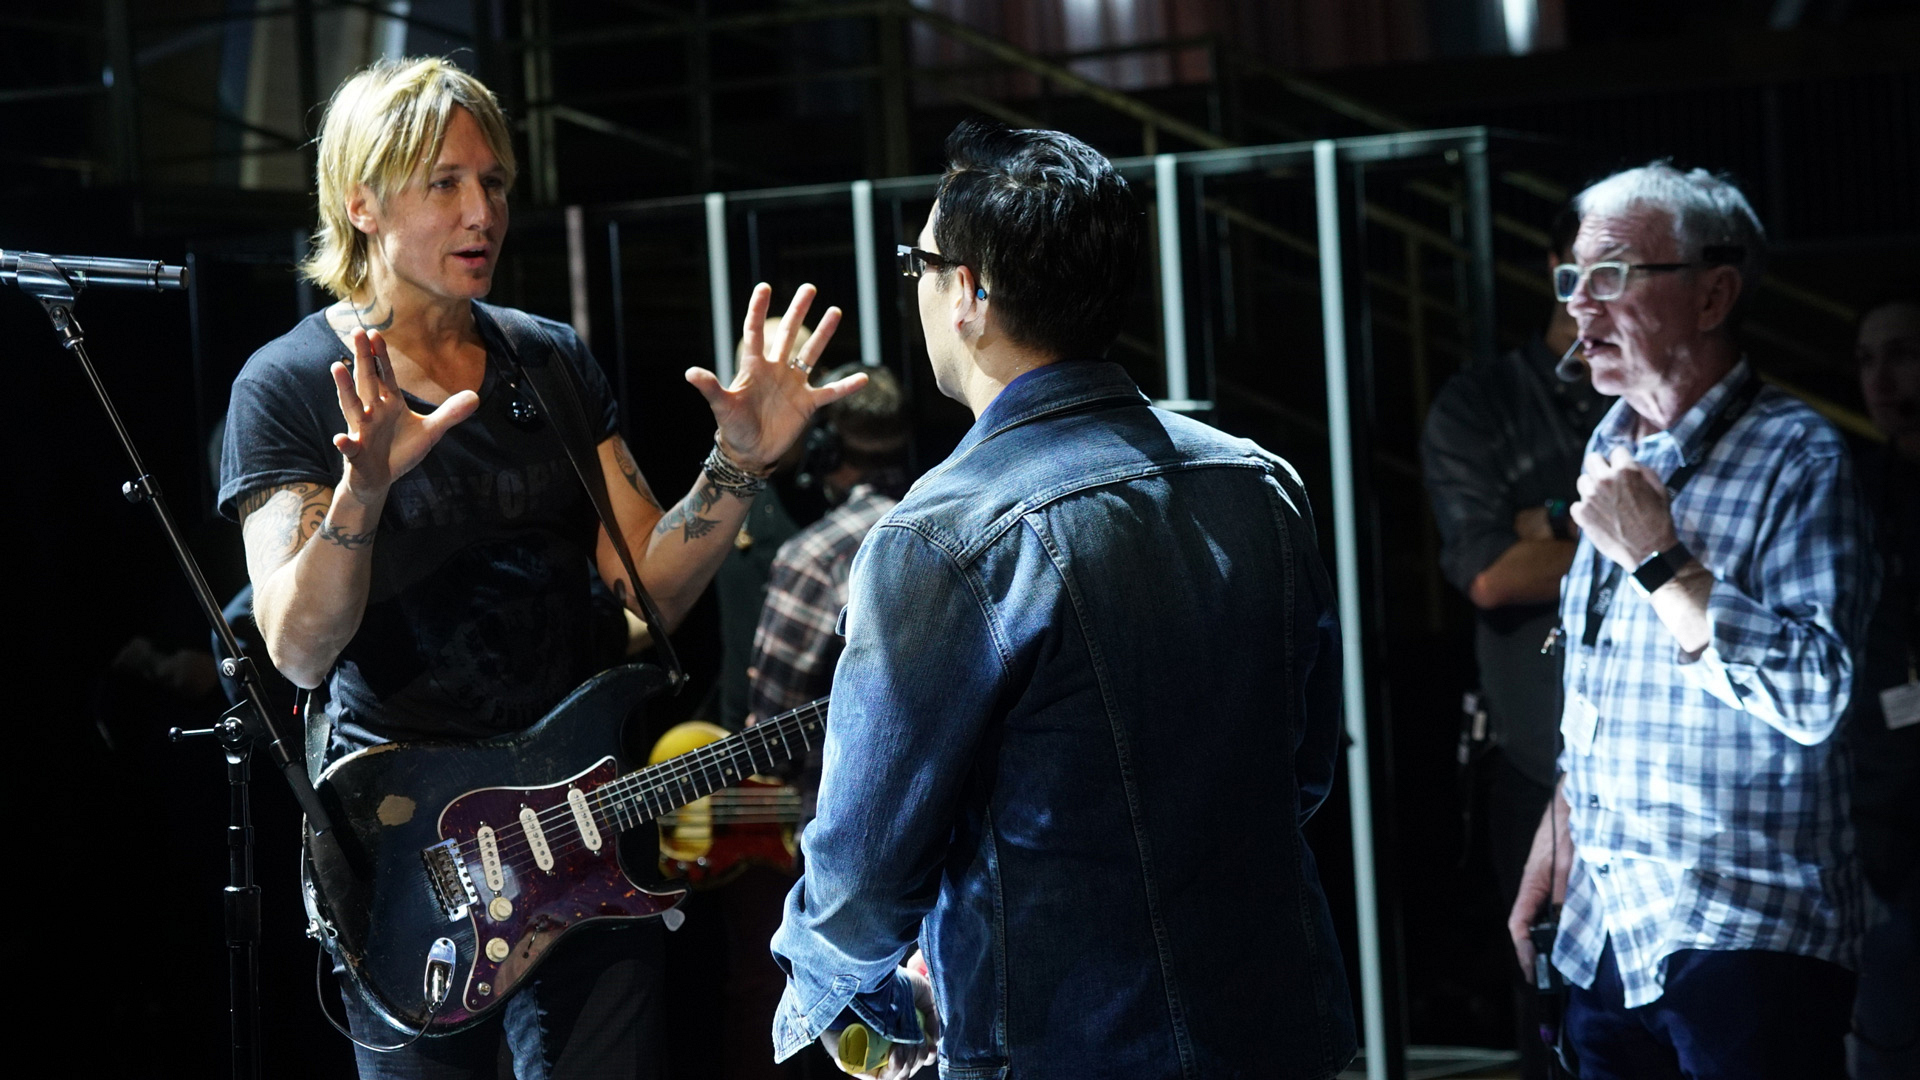 Keith Urban couldn't be more excited for his GRAMMY performance on Sunday.